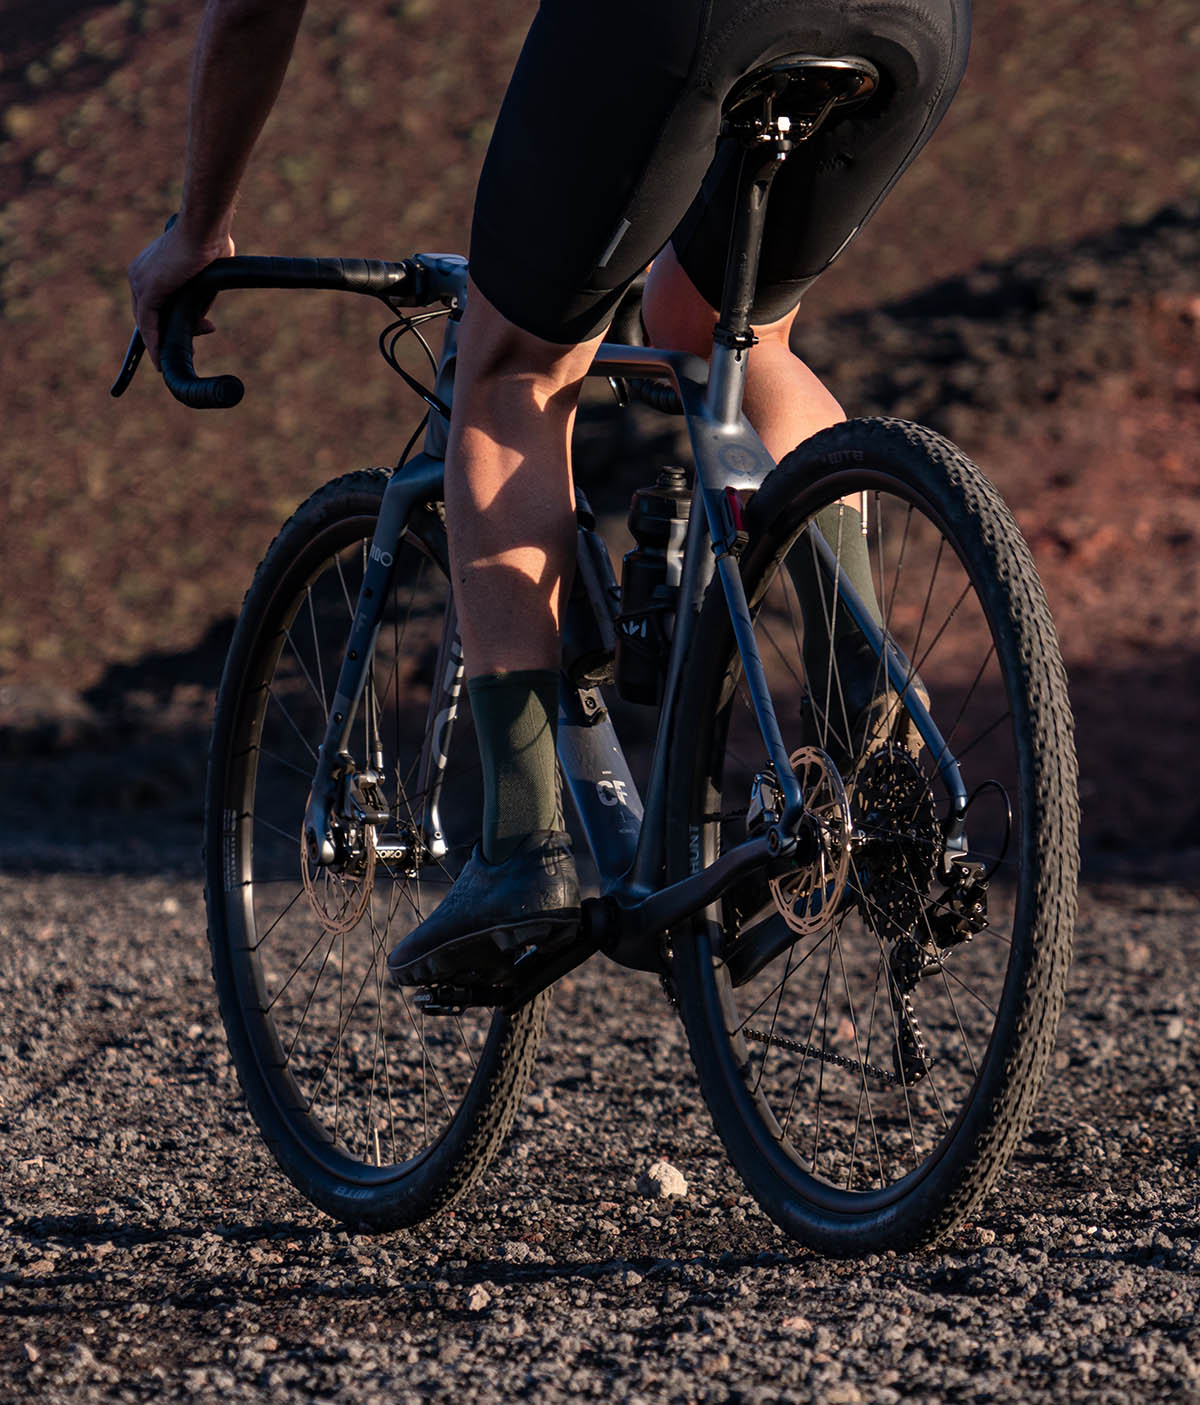 Gravel cyclists wear khaki socks to avoid dirt and stains during the ride